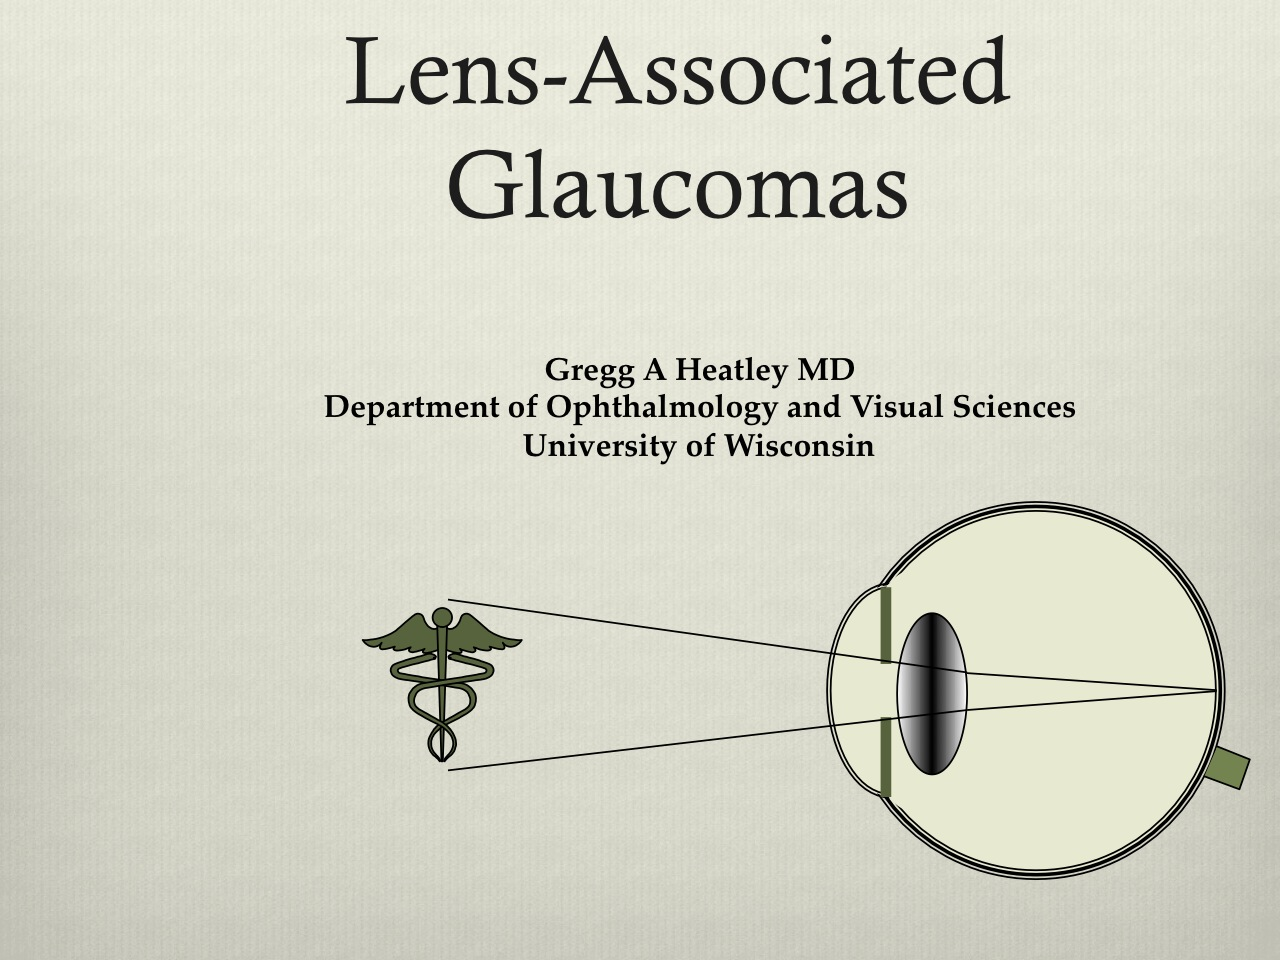 Picture from Dept. of Ophthalmology and Visual Sciences Grand Rounds - Heatley video